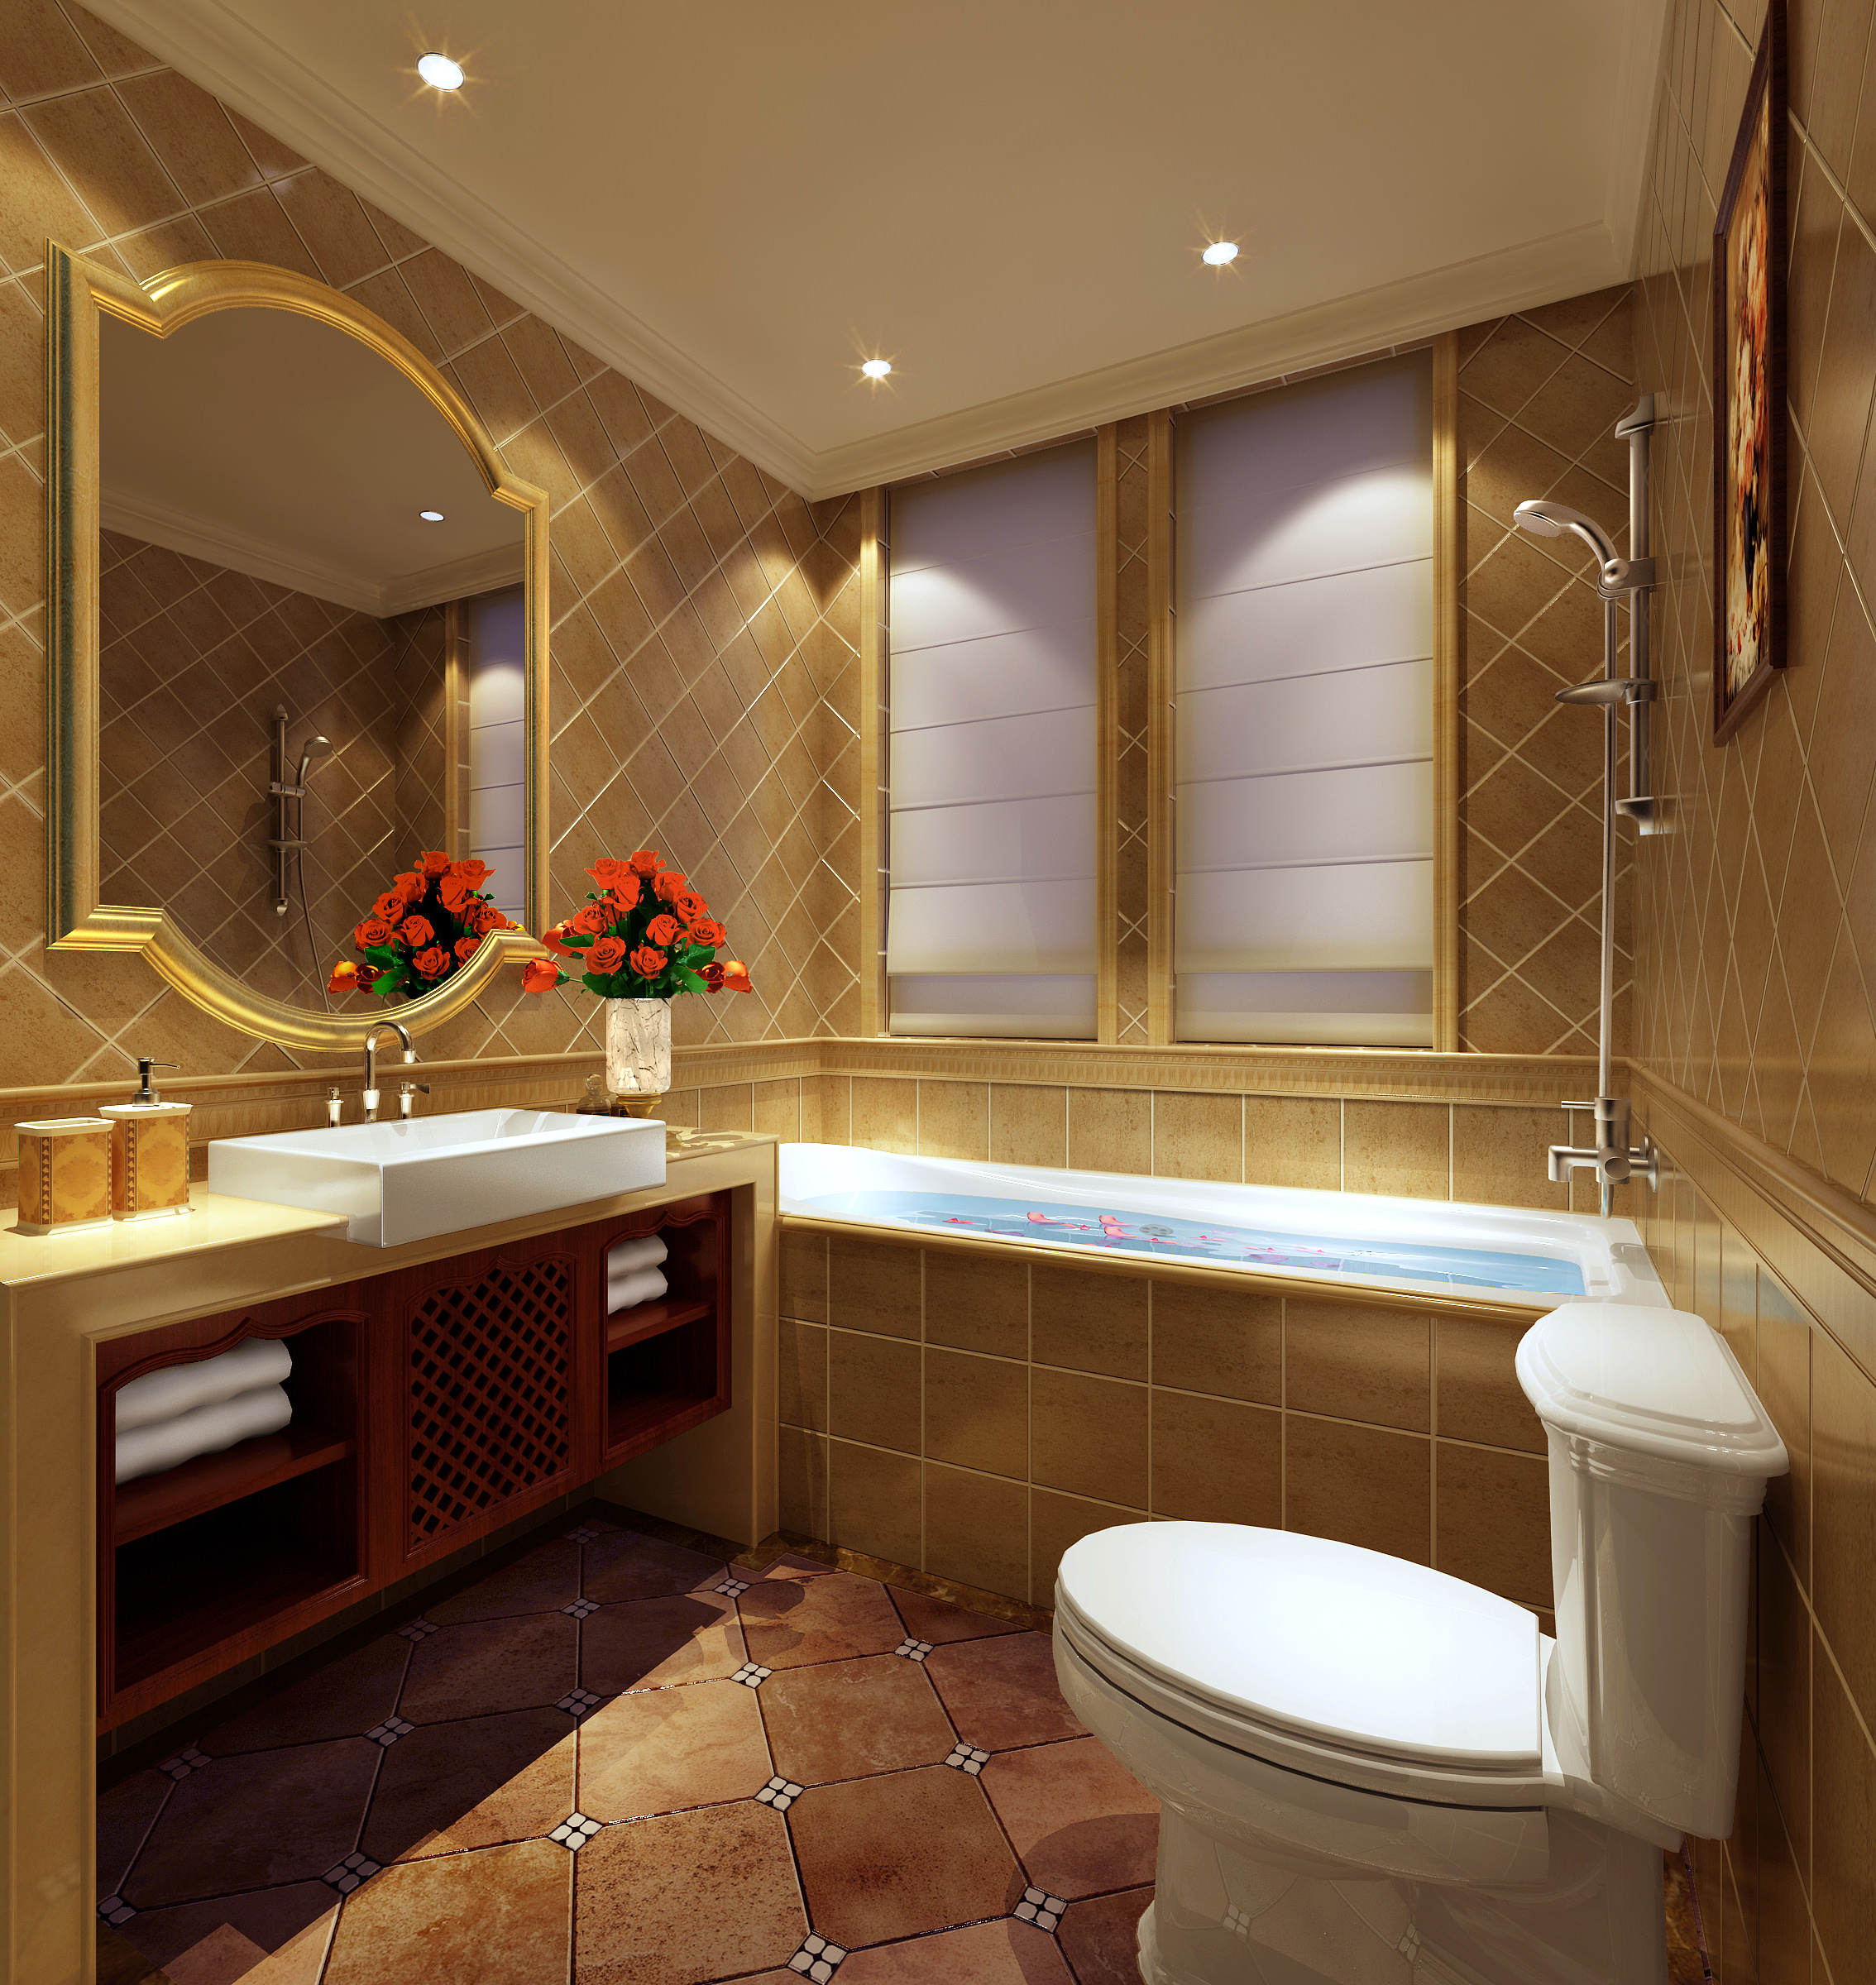 Luxury Bathroom 7 on asian bedroom design ideas